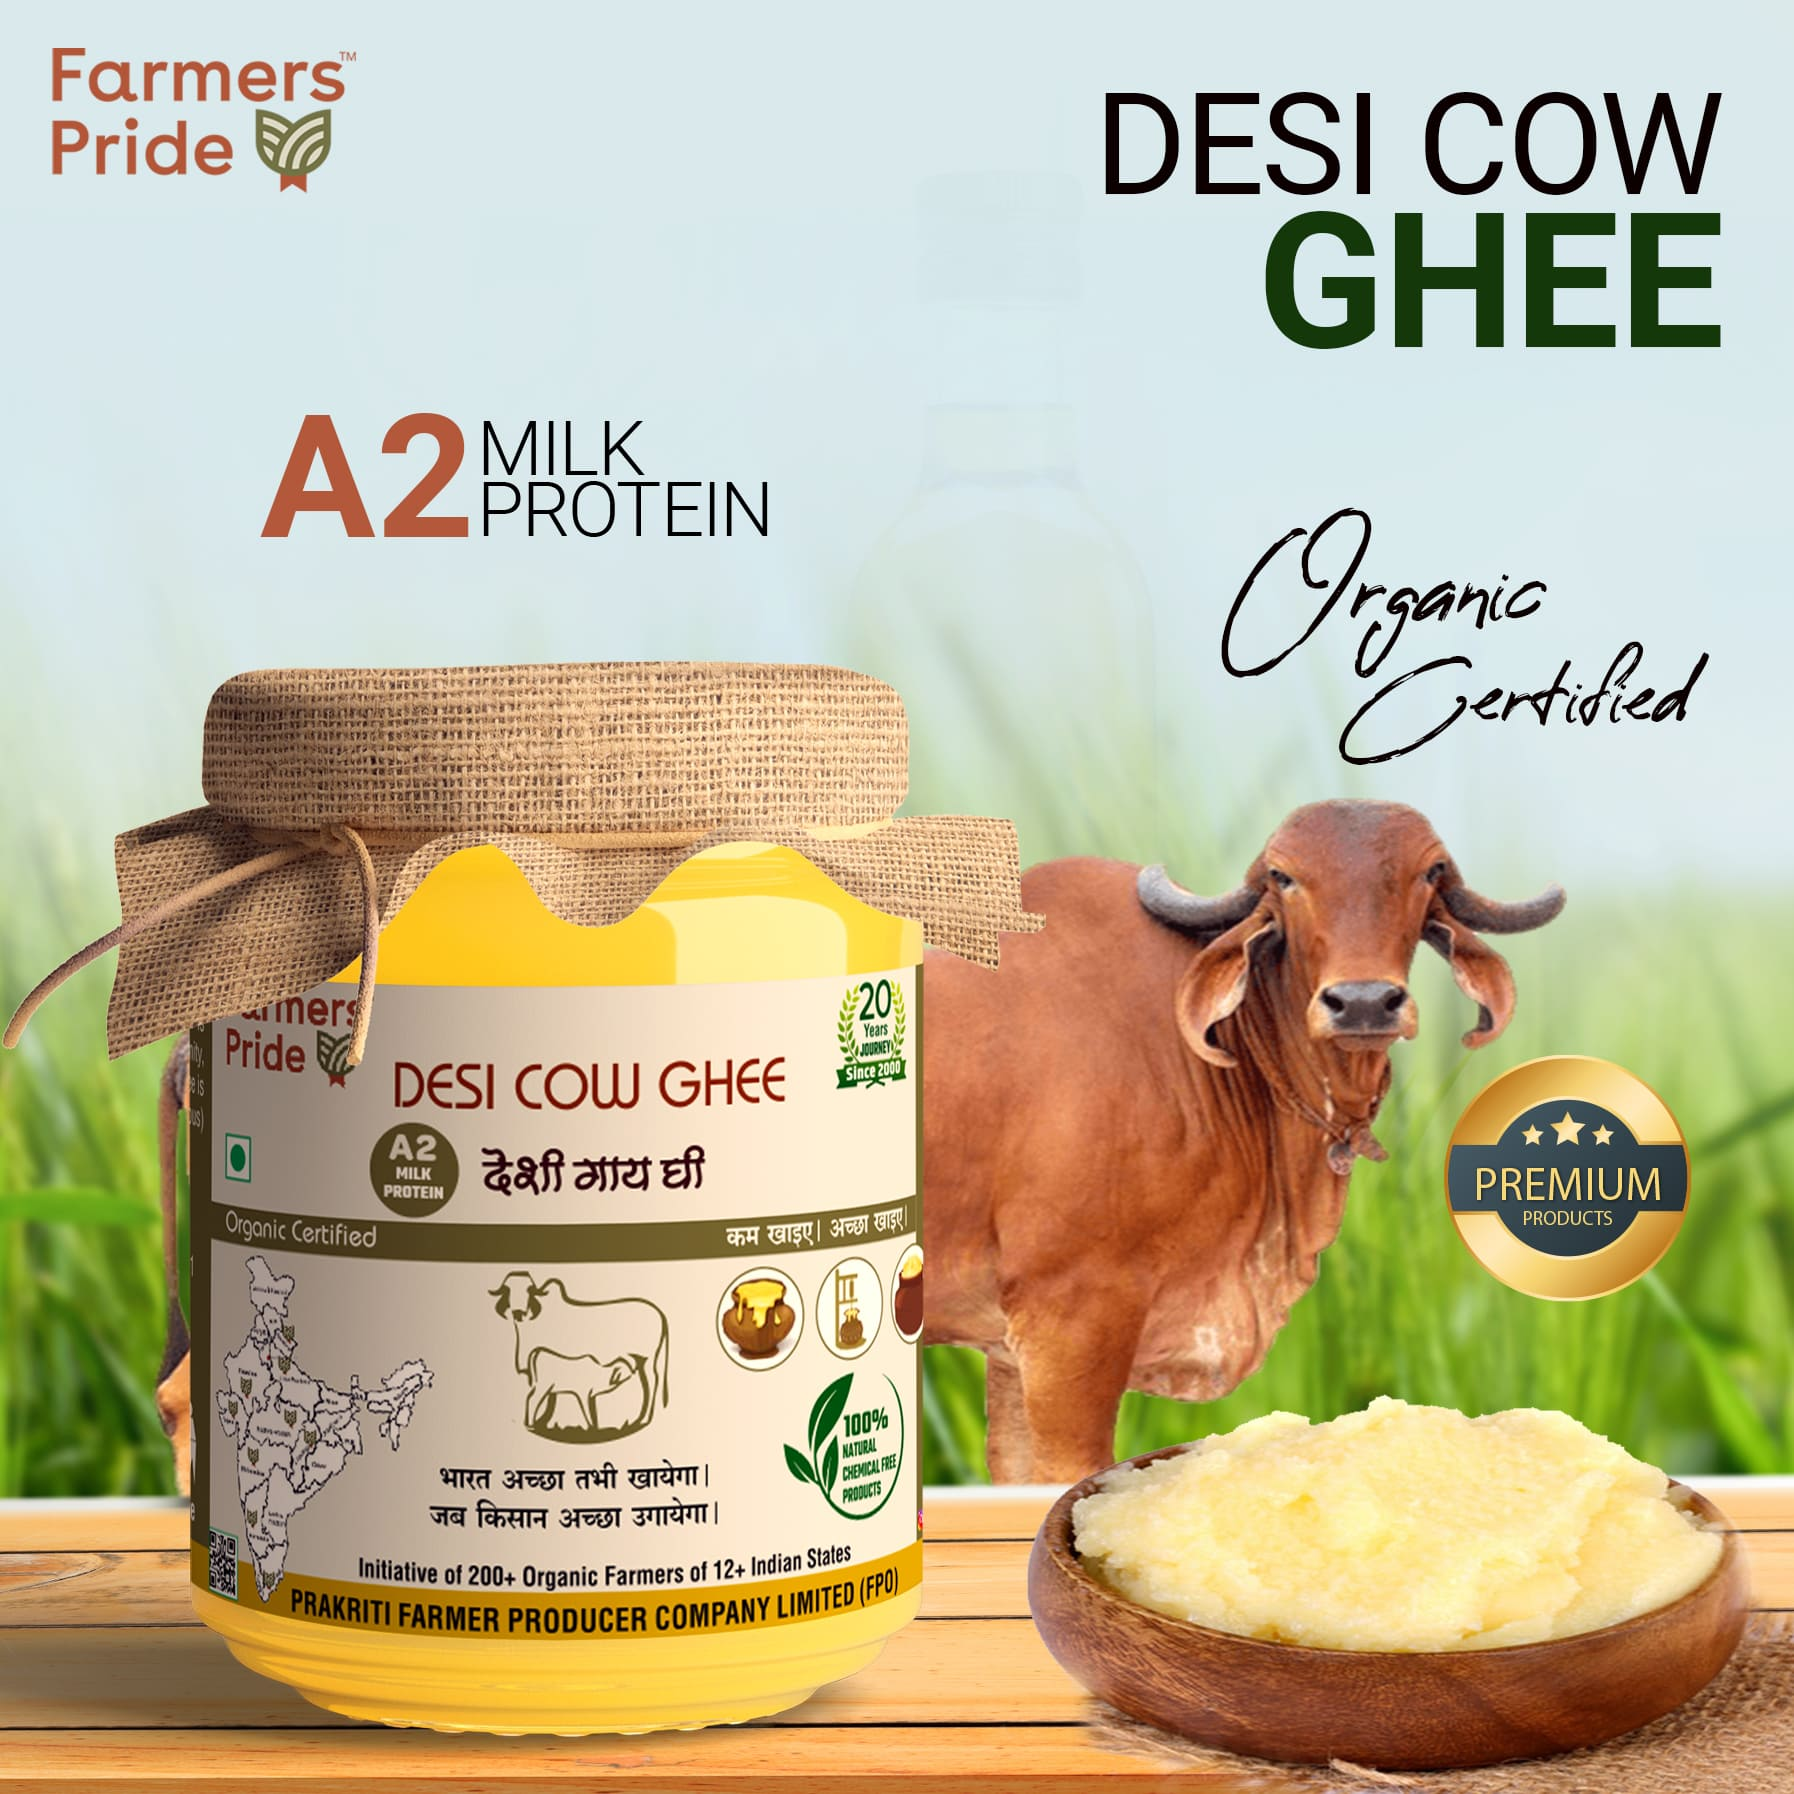 Organic A2 COW Ghee, a2cowghee, a2cowghee, a2 milk ghee usa, a2 cow ghee near me, a2 ghee benefits, a2 ghee, gir cow ghee india, desi ghee, a2 ghee india, a2 ghee online, a2 ghee delhi, gir cow ghee benefits, vedic a2 ghee price, desi cow ghee, vedic ghee, a2 ghee in mumbai, a2 ghee amazon, gir cow ghee amazon, desi cow ghee in usa, a2 ghee near me, vedic a2 ghee, a2 ghee in usa, a2 ghee nutrition, farmers pride a2 ghee, a2 ghee brands in india, why is a2 ghee so expensive?, why is a2 ghee better?, what is a1 and a2 ghee?, which a2 cow ghee is best?, desi cow ghee price, a2 milk ghee, a2 cow ghee benefits, cruelty free ghee, a2 cow ghee online, a2 cow ghee, desi cow ghee benefits, gir cow ghee online, gir ghee, gir cow ghee, pure indian desi gai ghee, how to make ghee, gir cow ghee price, a2 desi ghee, a2 organic ghee, a2 ghee organic, ghee a2, cultured ghee,  desi cow,